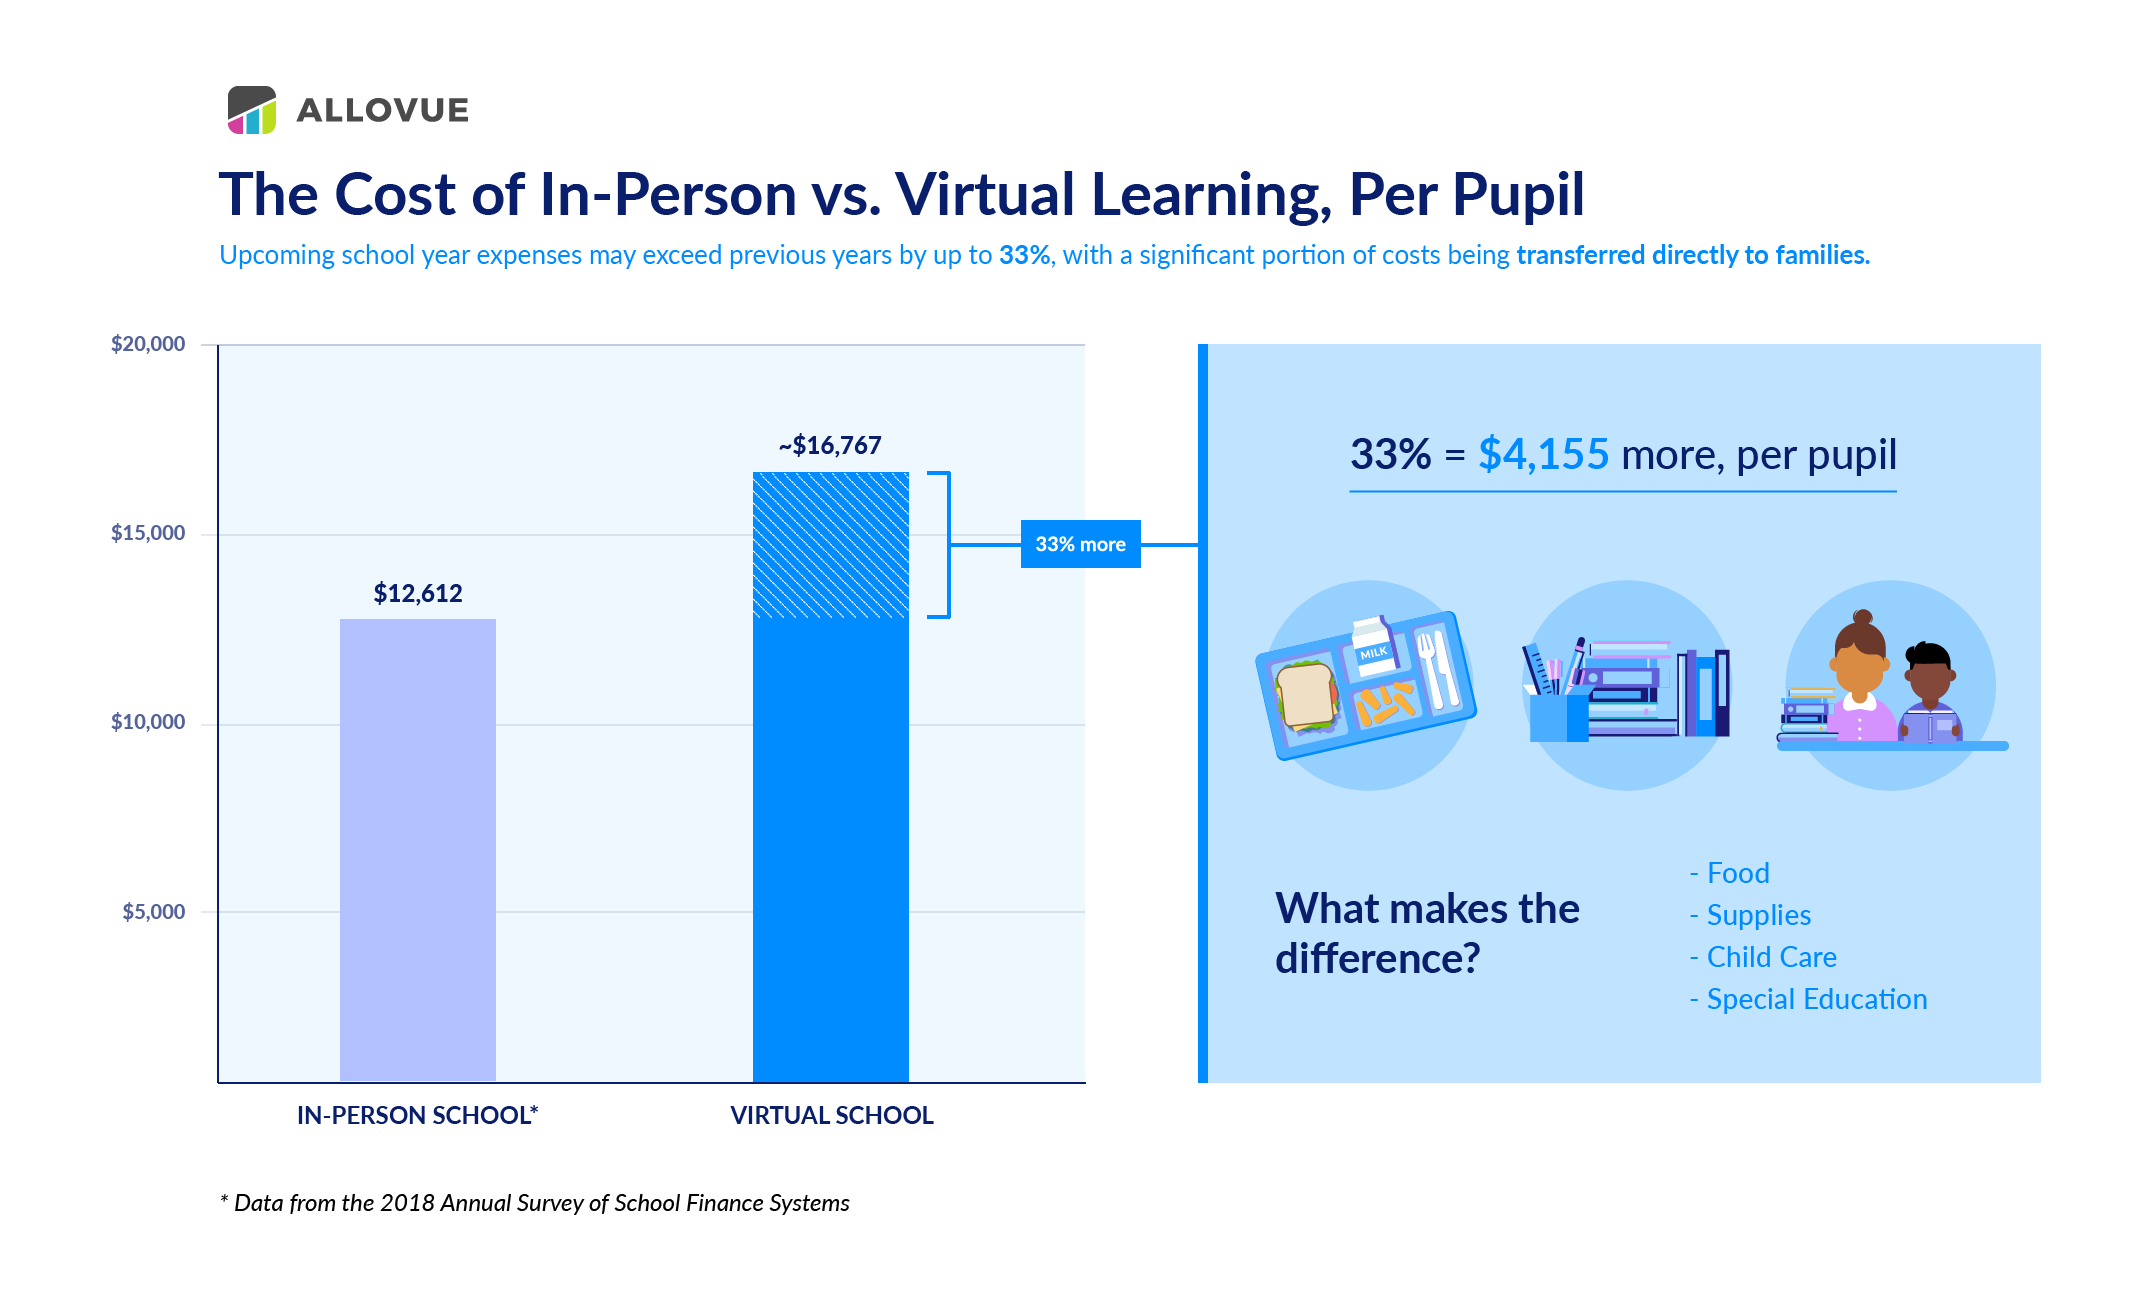 The Cost of In-Person vs. Virtual Learning, Per Pupil